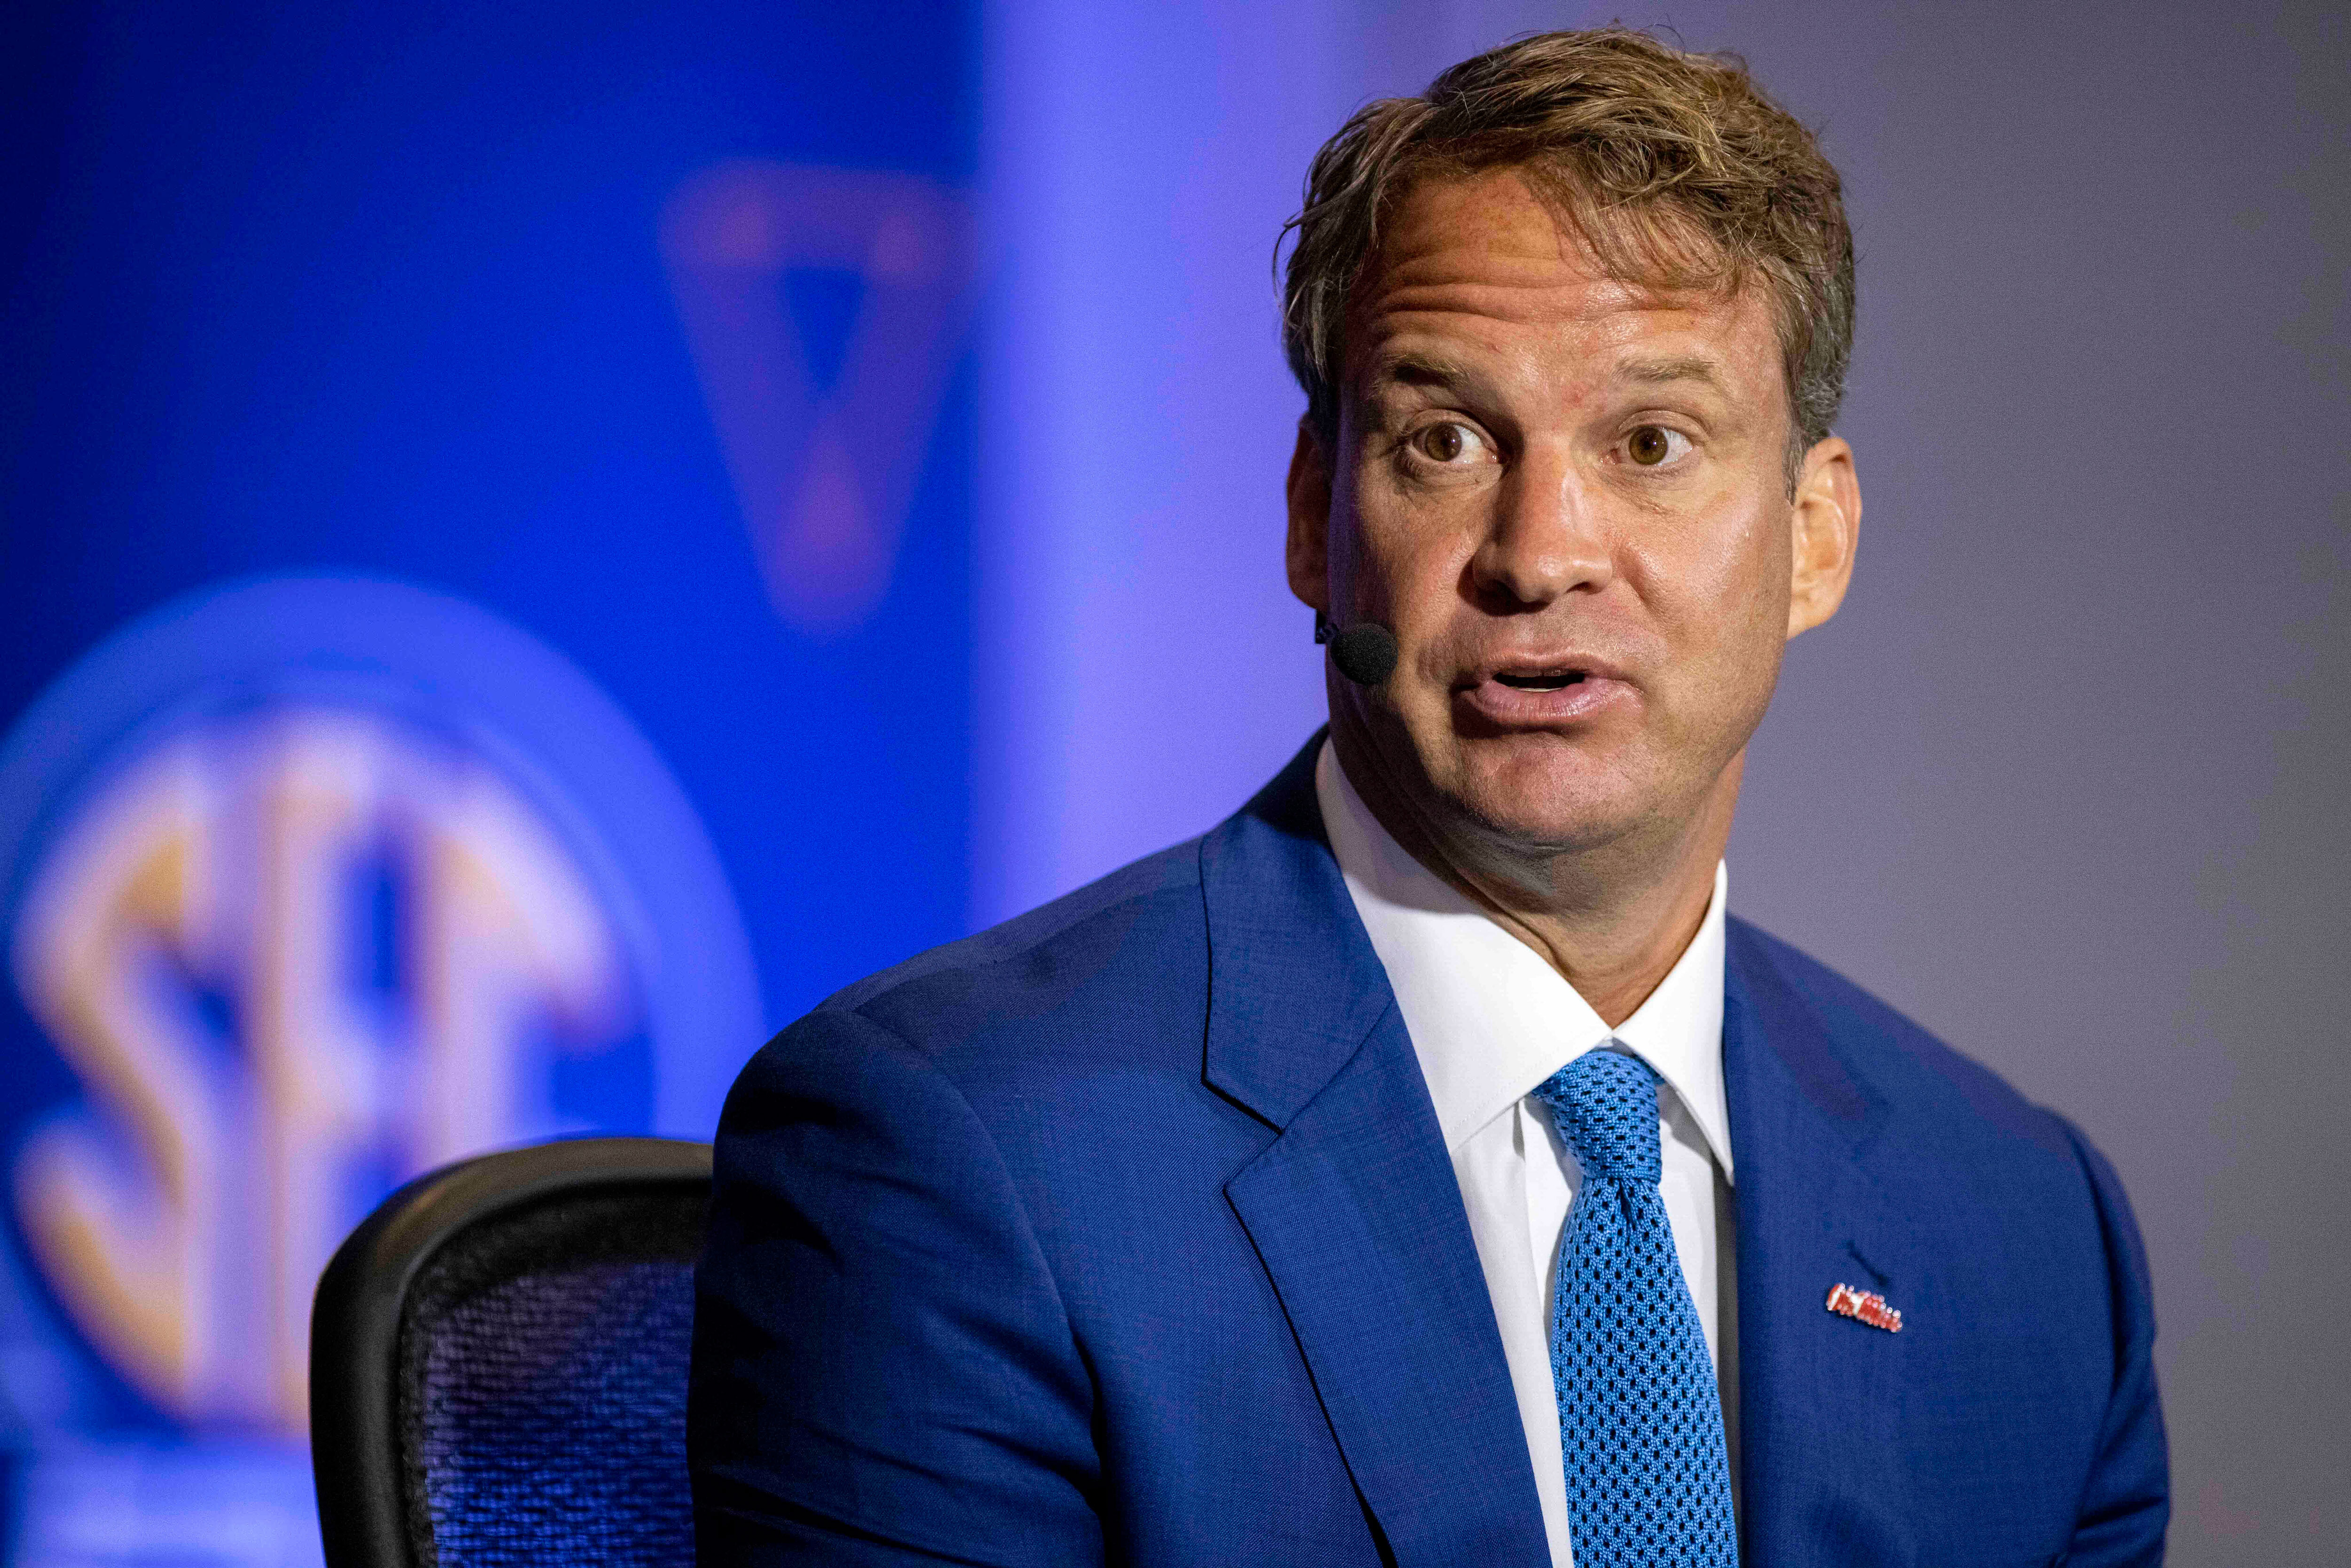 Ole Miss football coach Lane Kiffin to miss game after breakthrough Covid-19 diagnosis